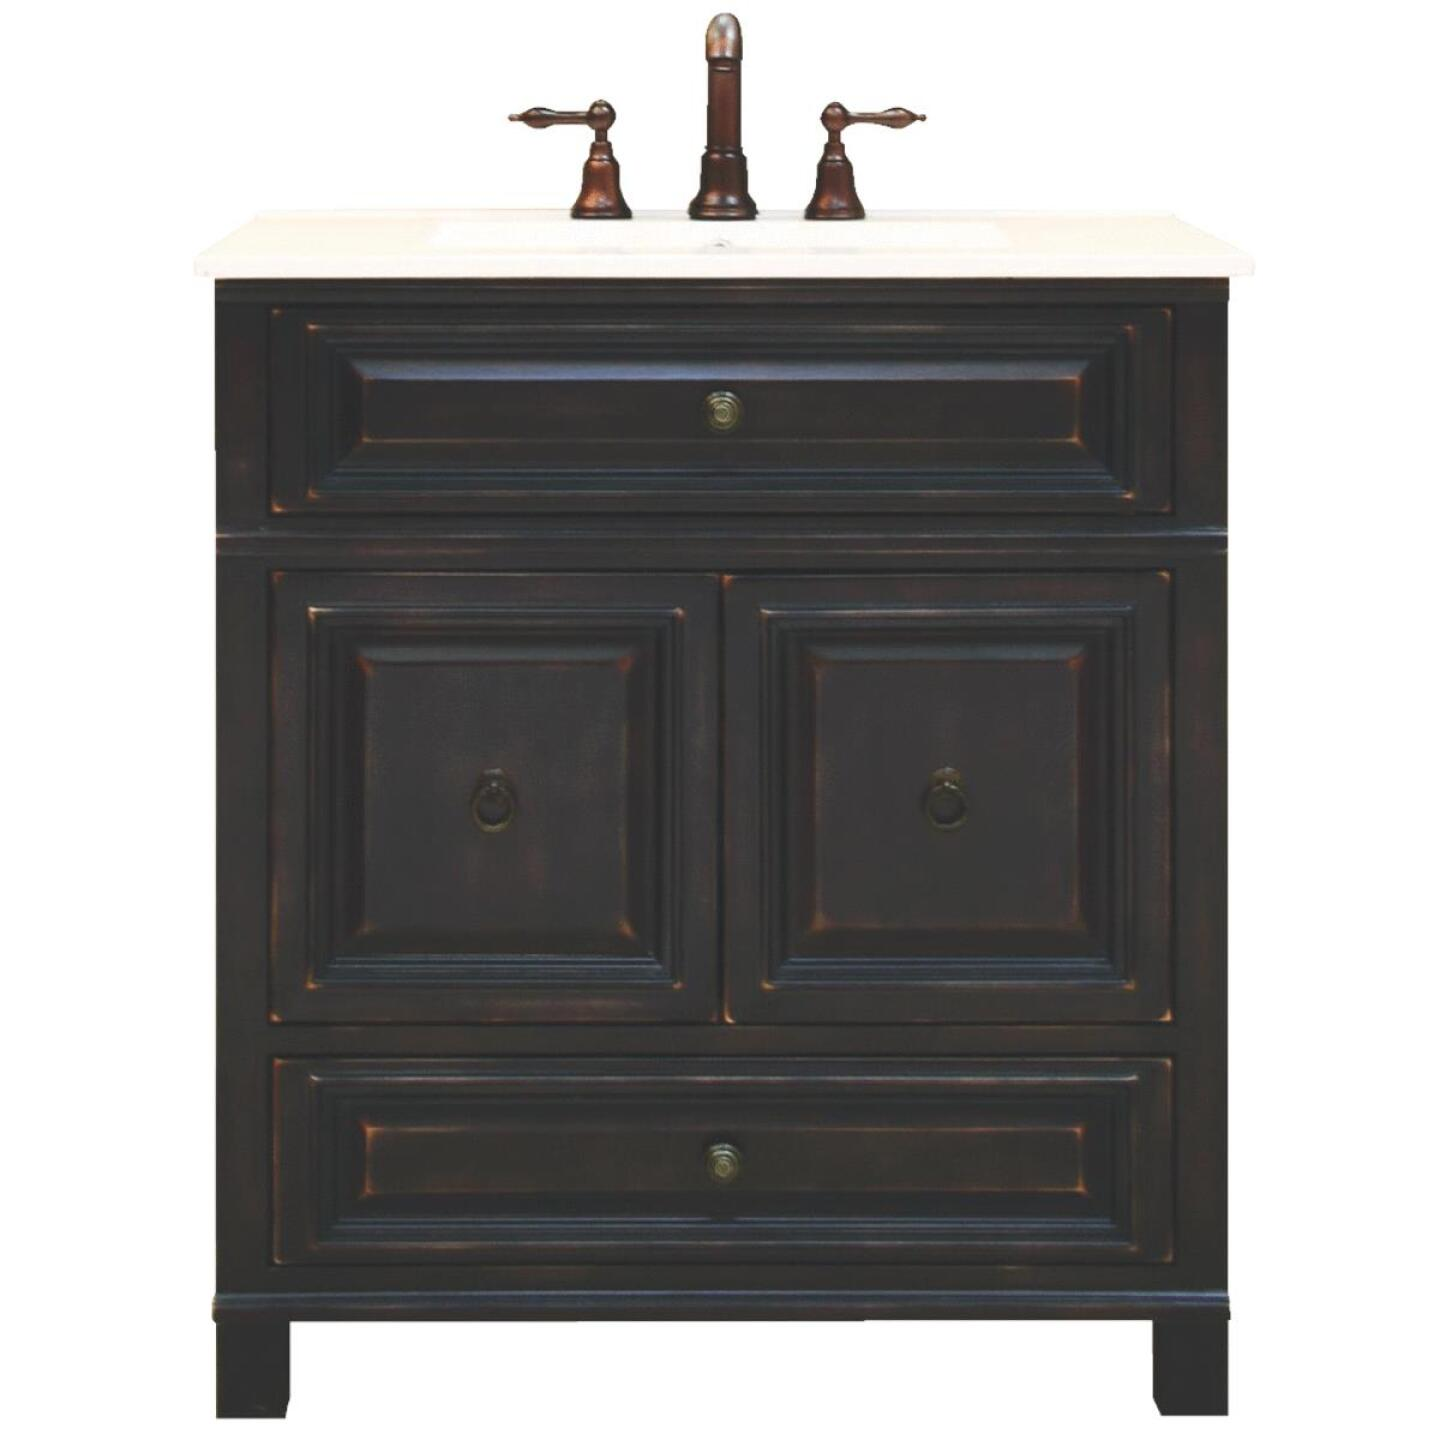 Sunny Wood Barton Hill Black Onyx 30 In. W x 34 In. H x 21 In. D Vanity Base, 2 Door/1 Drawer Image 176